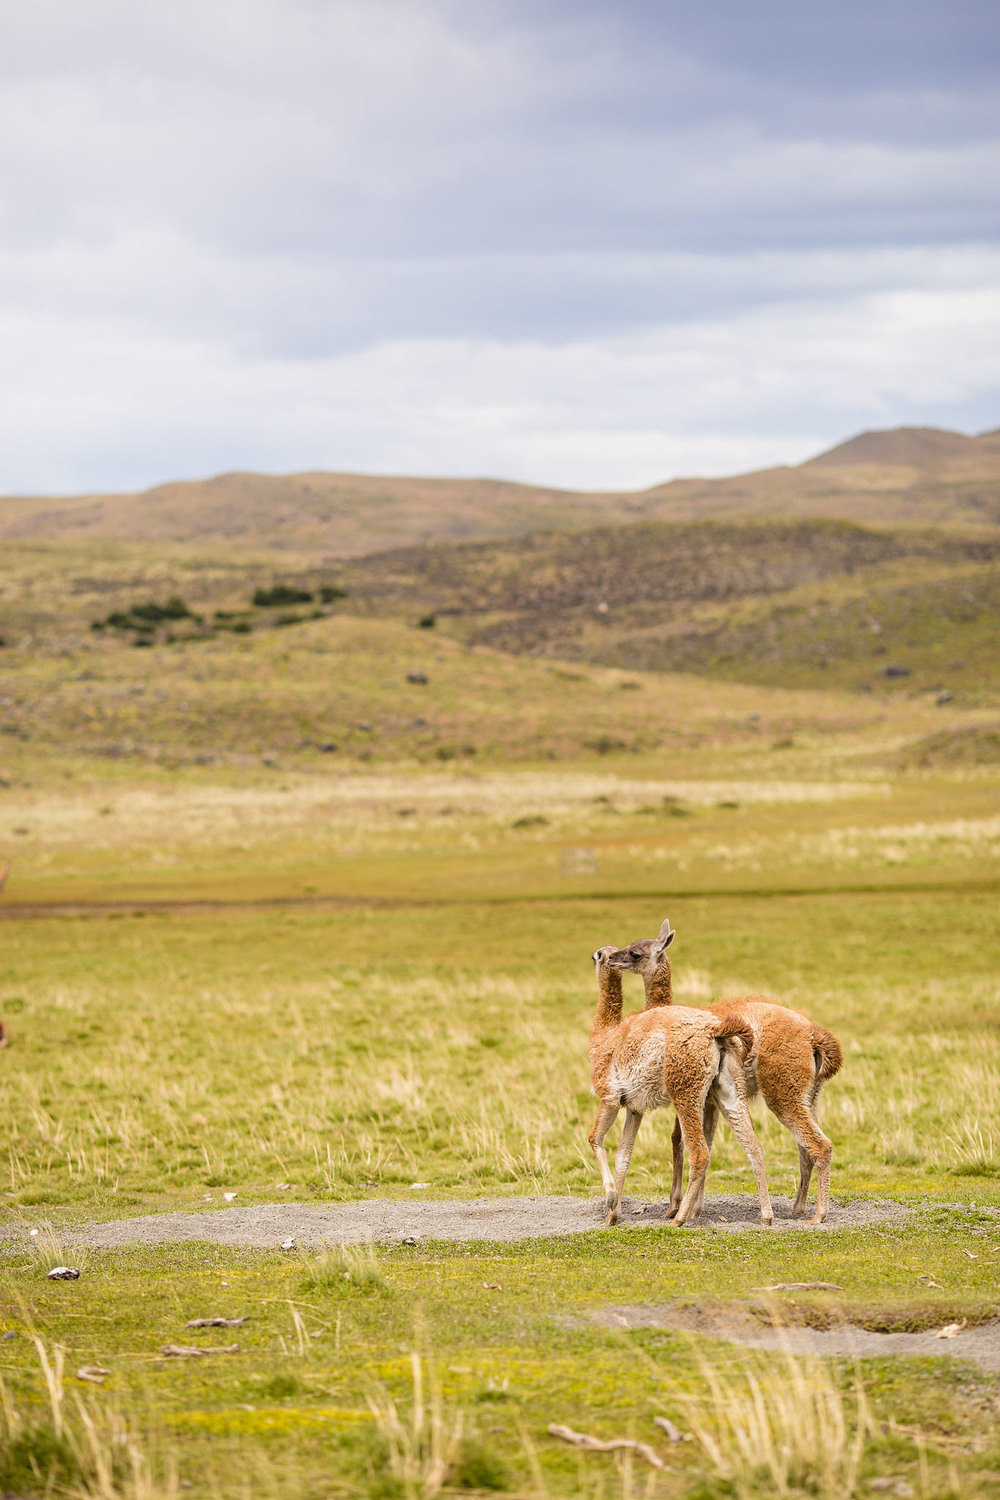 Wedding-Travellers-Overlanding-Destination-Wedding-Chile-Torres-del-Paine-guanaco-llama-lama